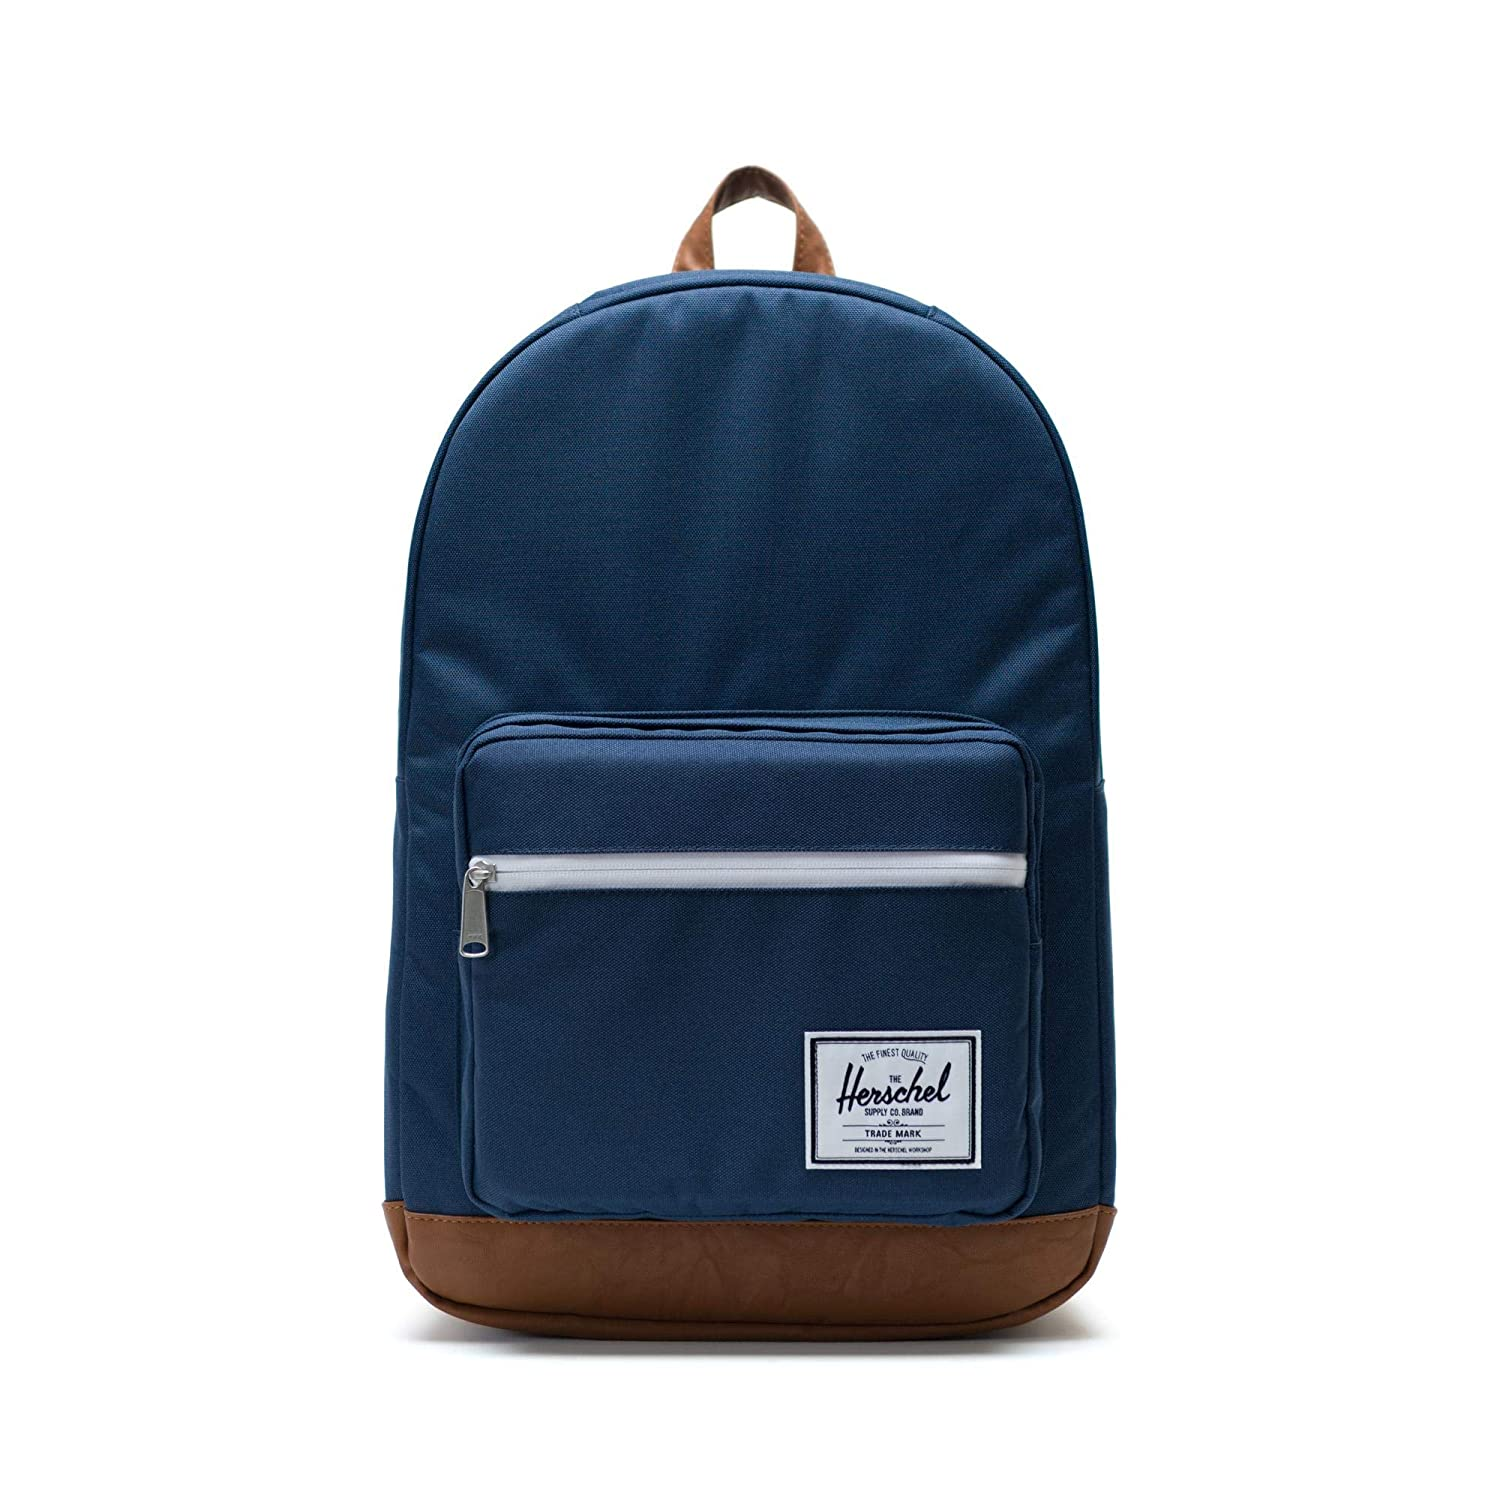 In Design; Herschel Classic X-large Backpack Navy Blau Novel